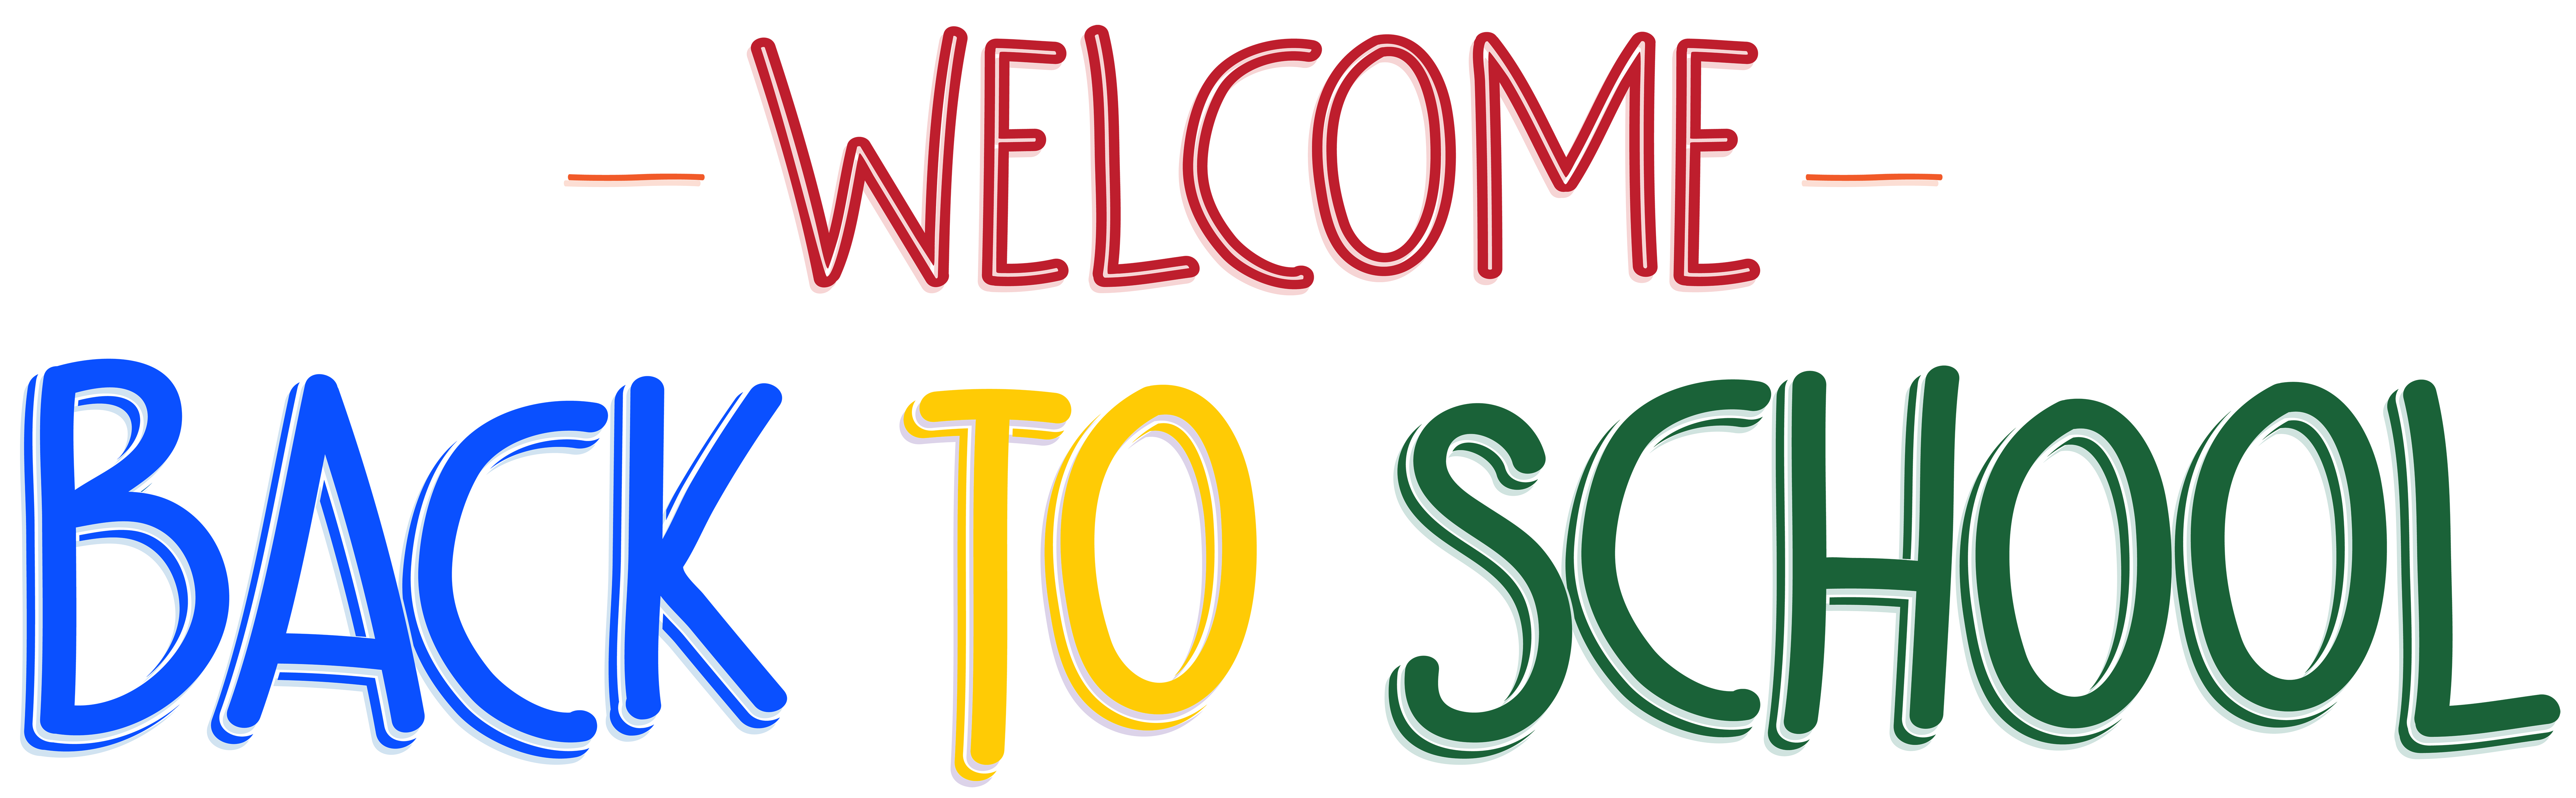 Welcome back to school clip art free - ClipartFox